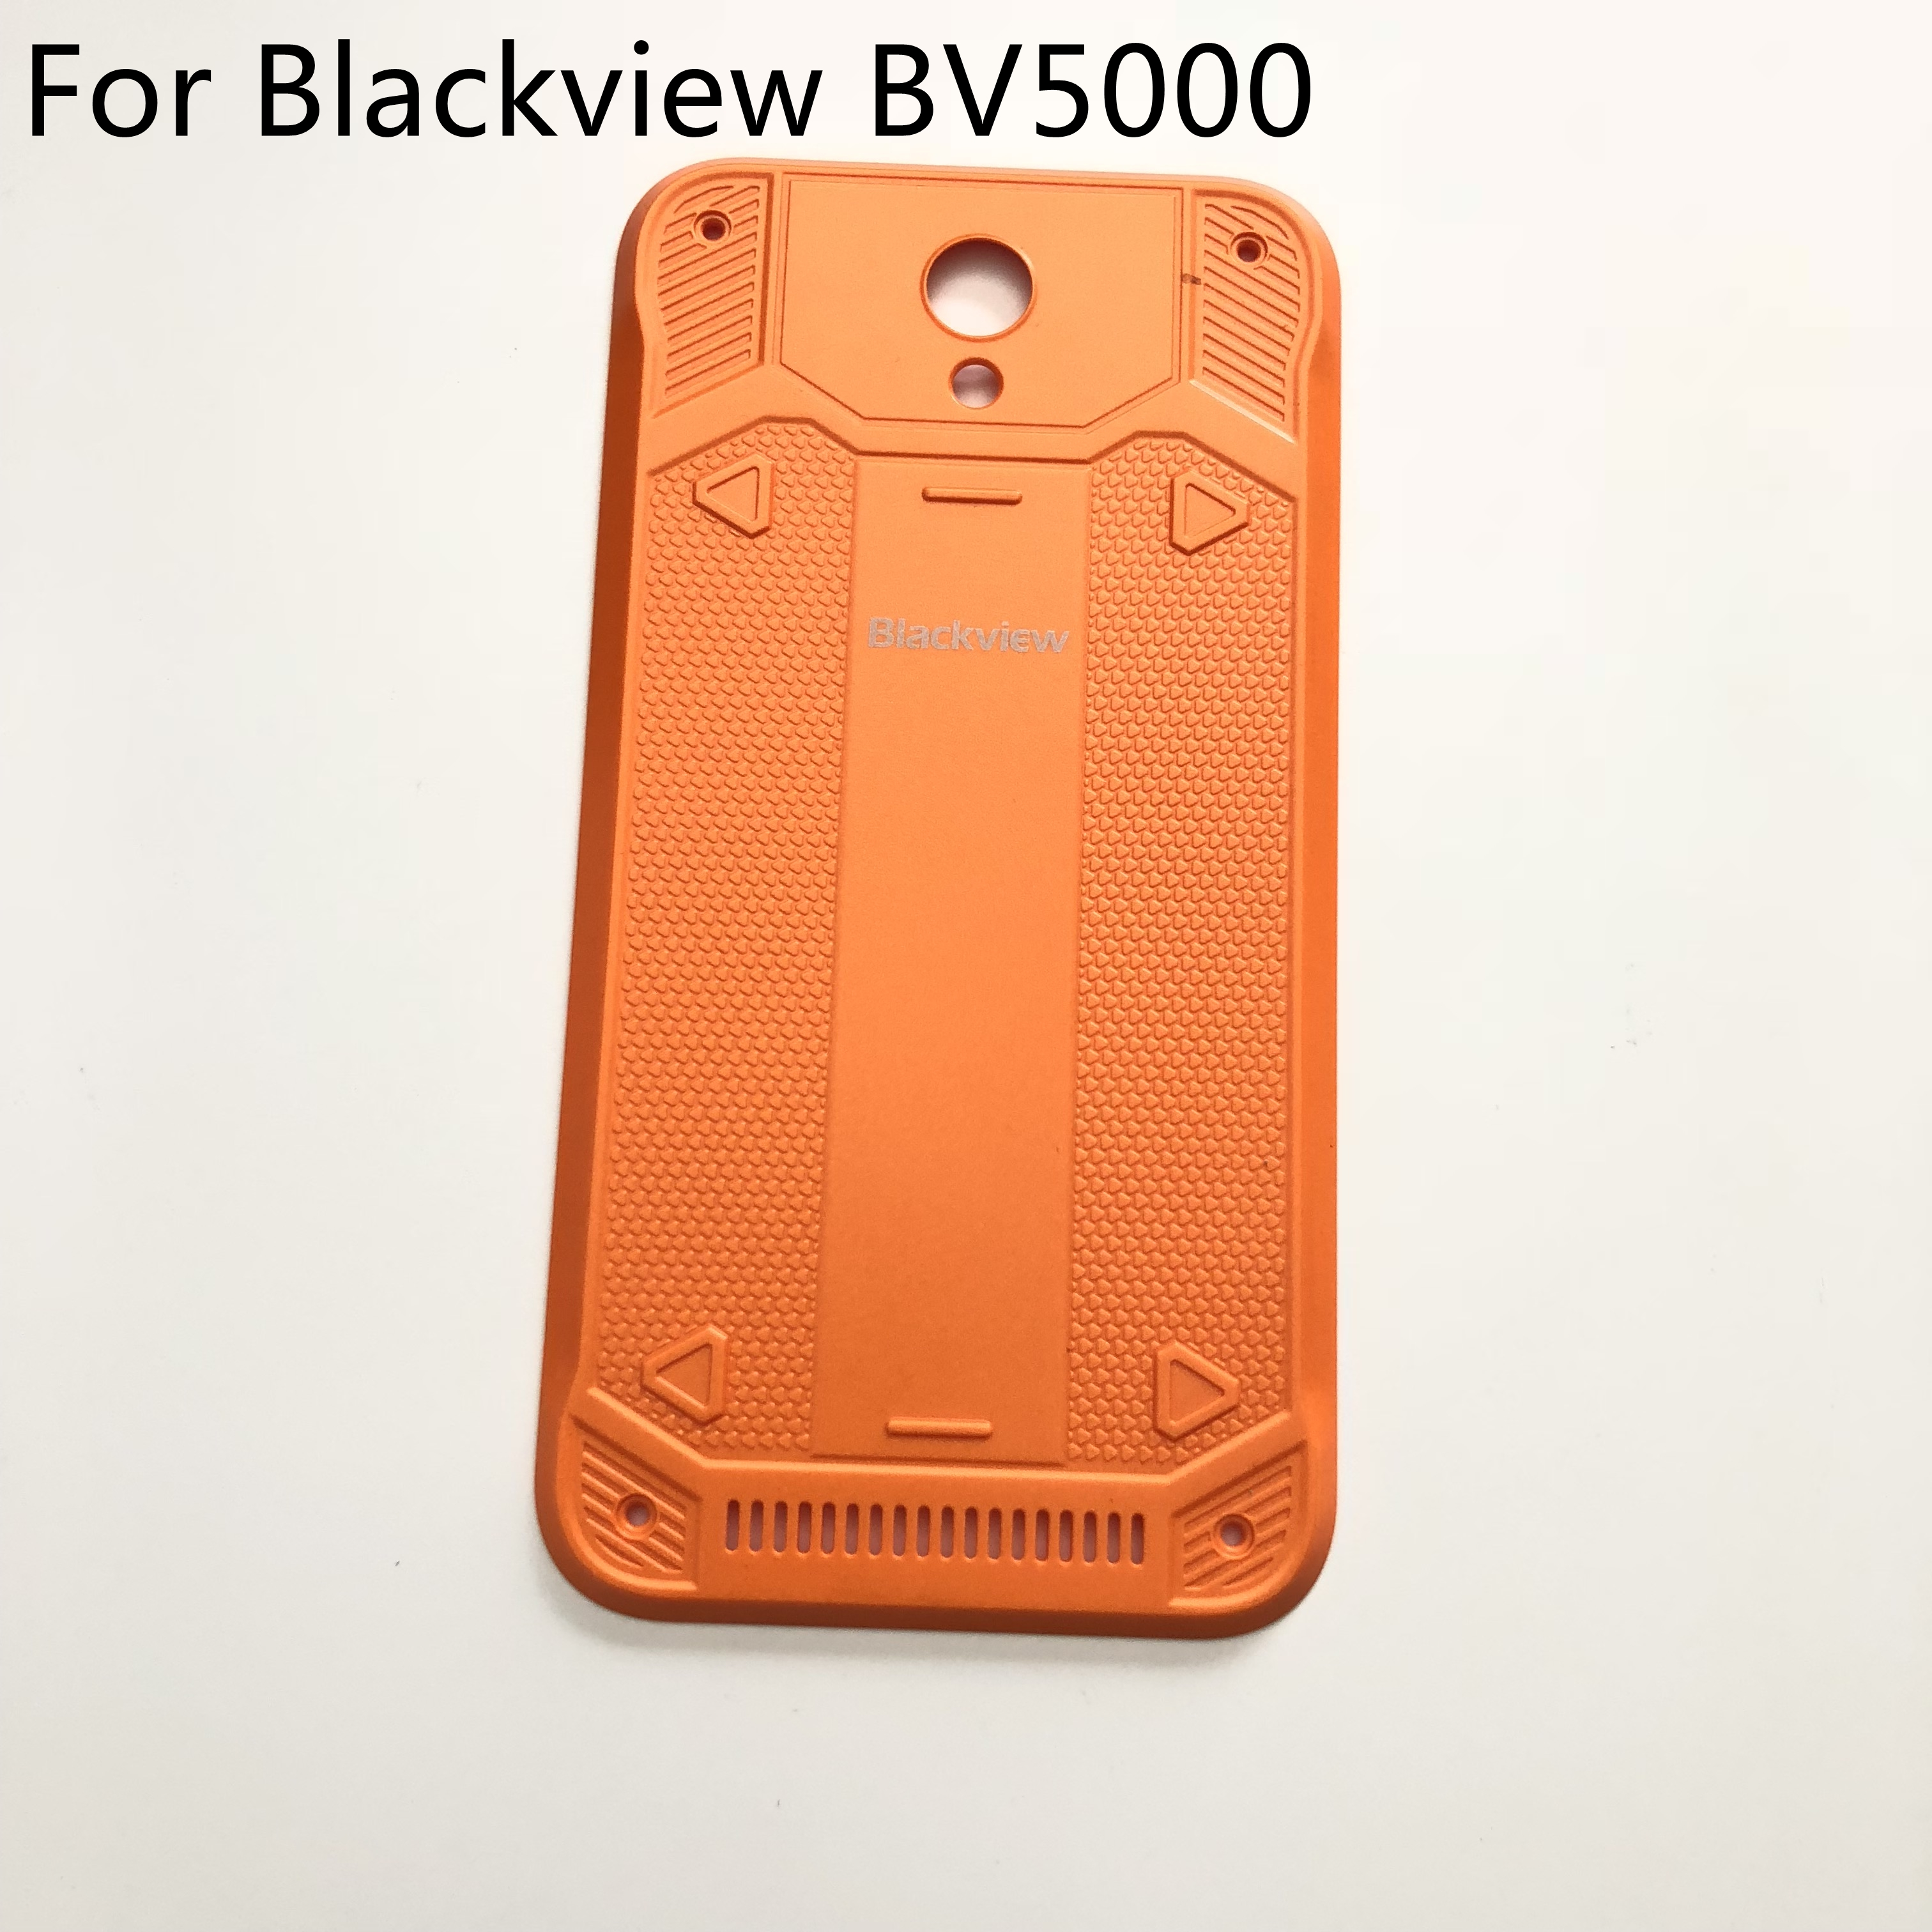 Used Original Blackview BV5000 Battery Cover Back Shell Repair Replacement Accessories For Blackview BV5000 Free Ship+Track